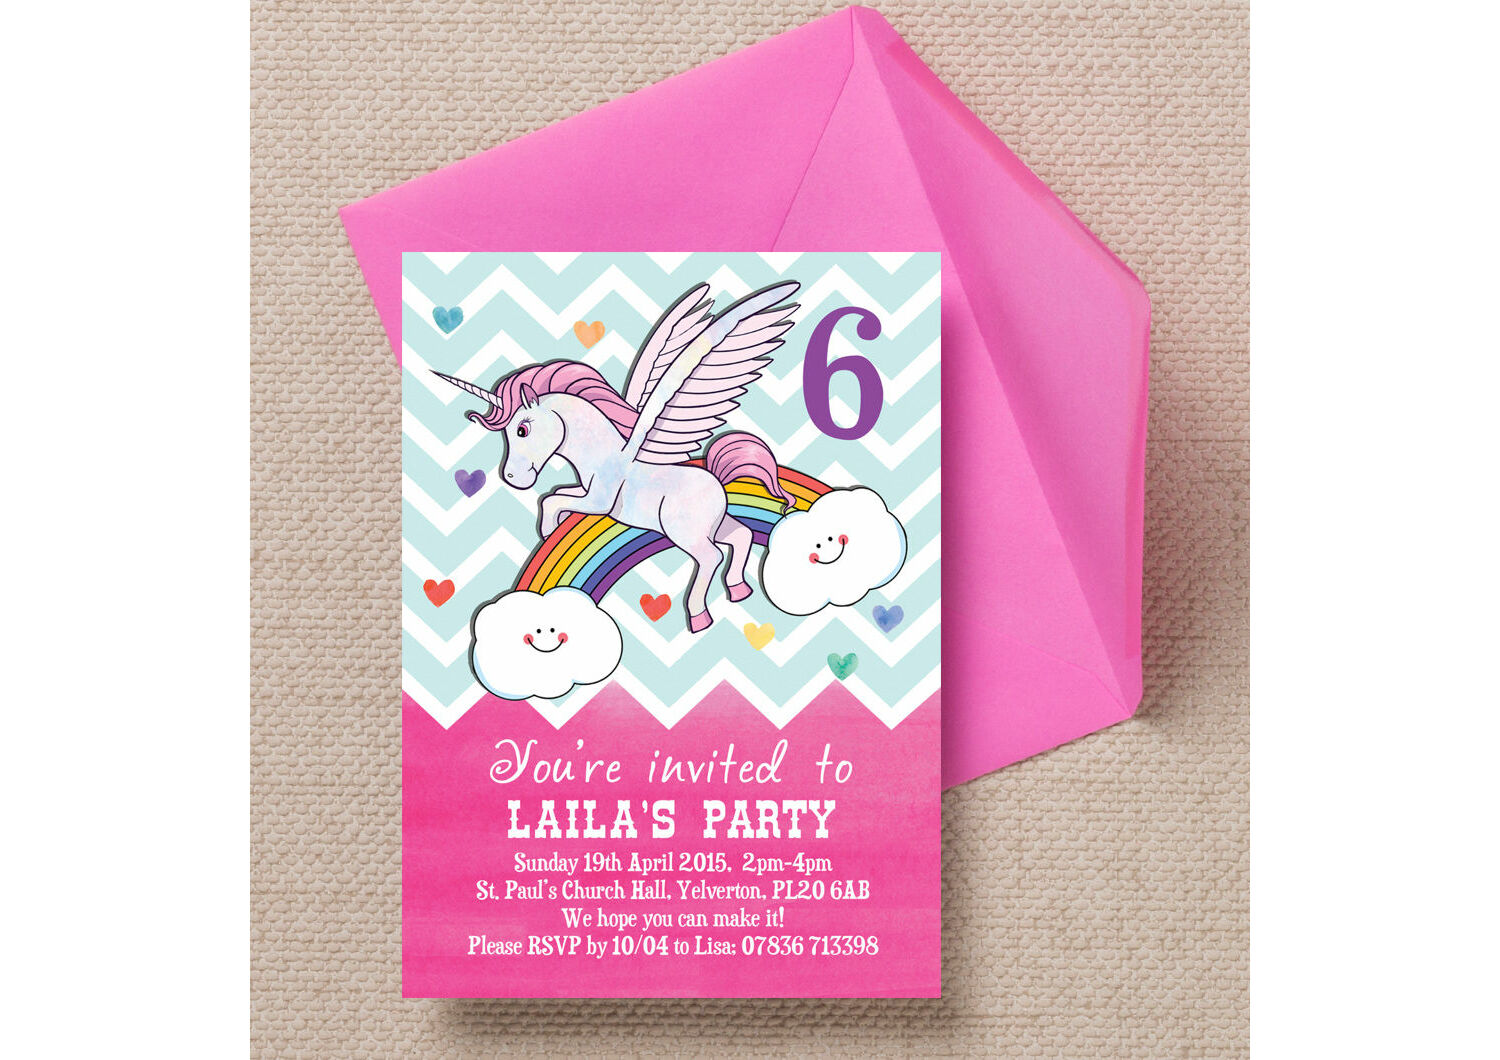 Surprise Birthday Party Invitations - Page 2 - Happy